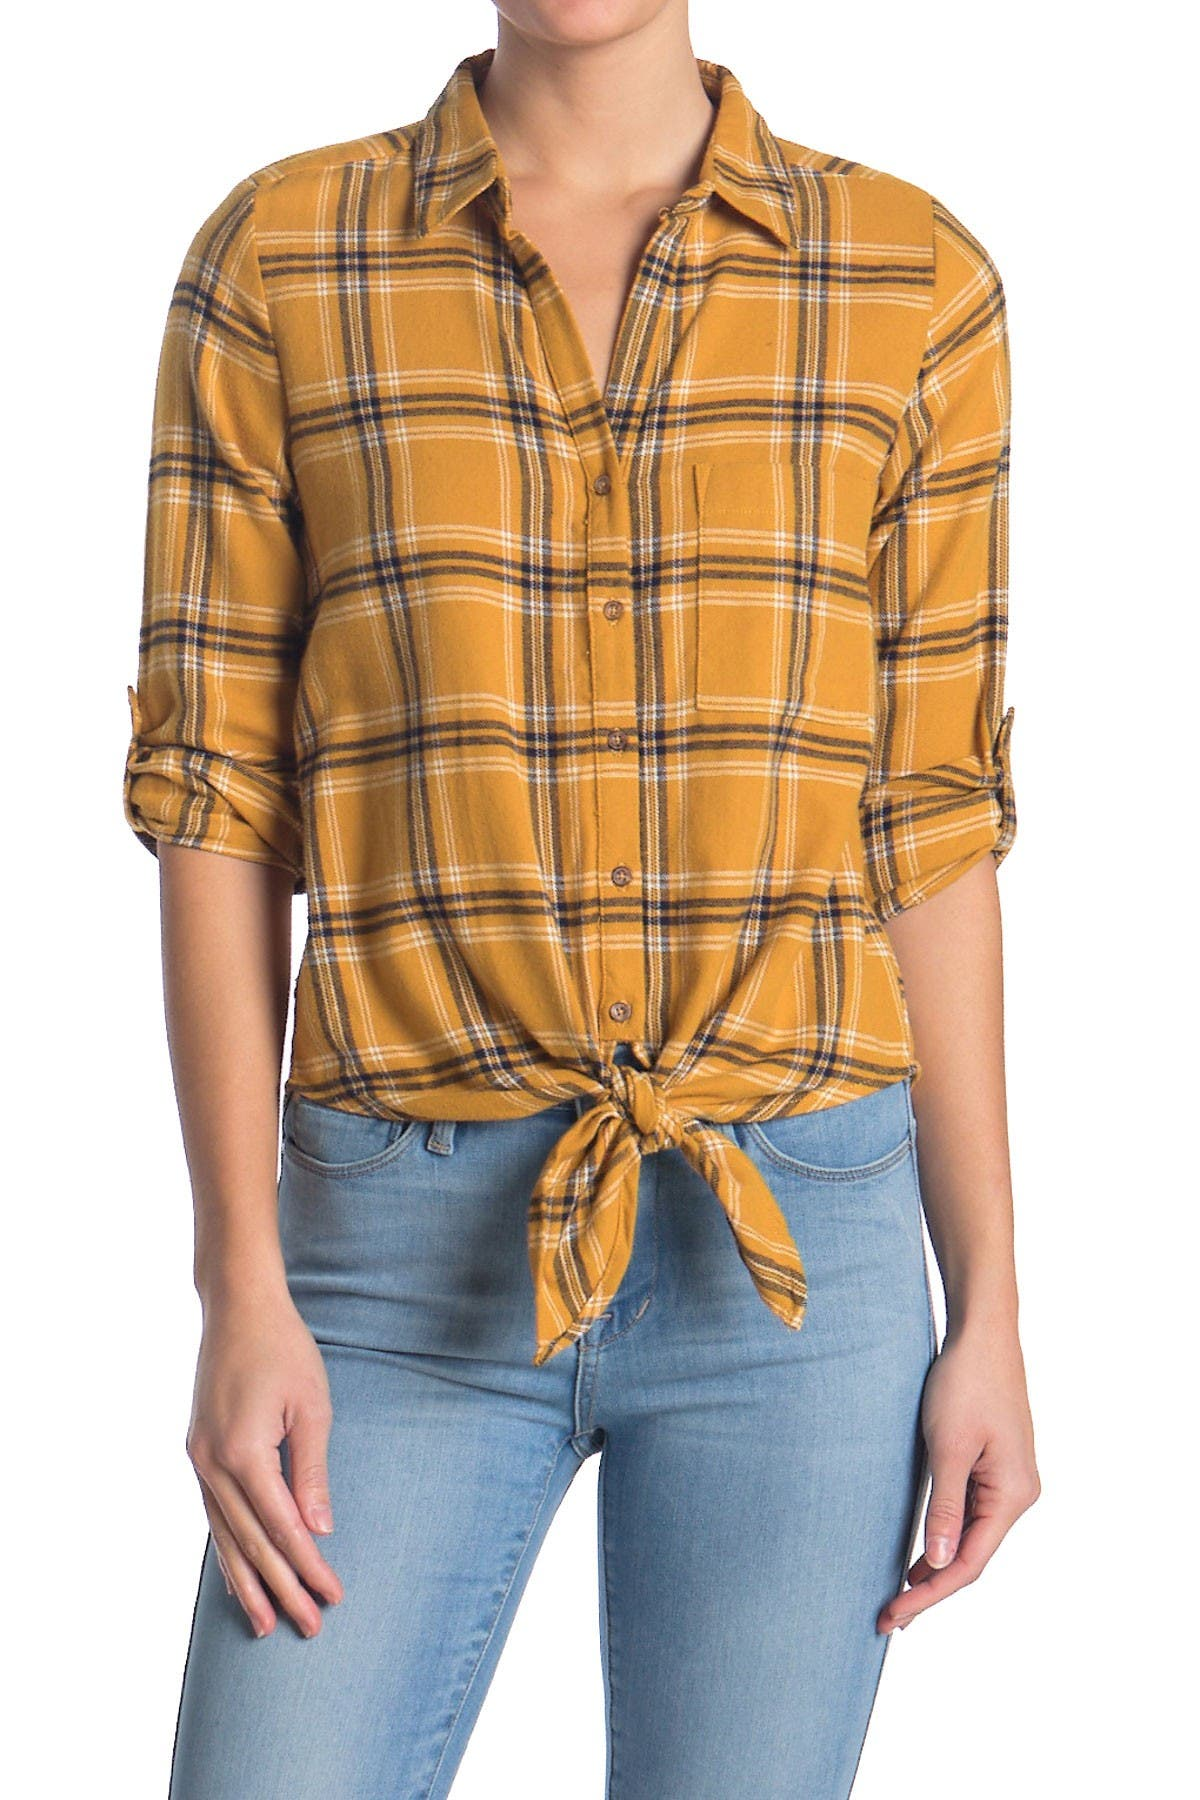 Image of Harve Benard Roll Tab Tie Front Plaid Print Flannel Shirt